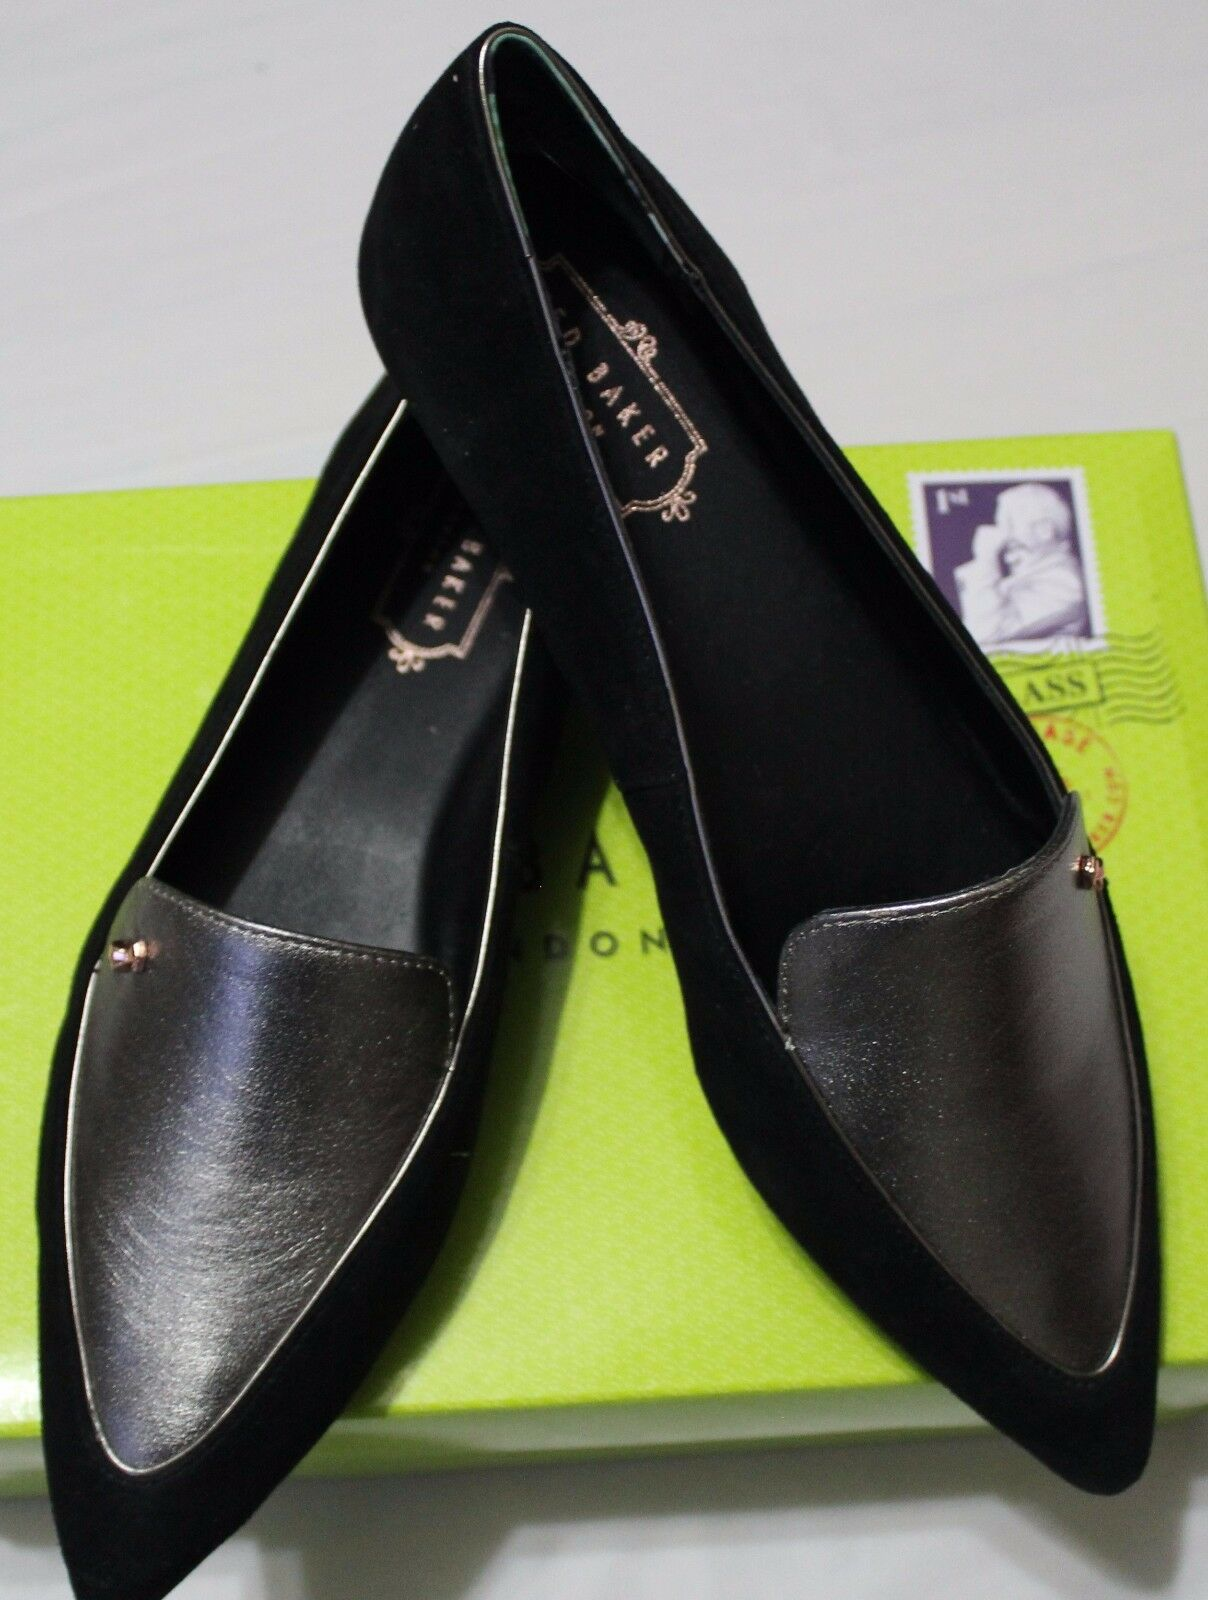 148 TED BAKER OLESHKY BLACK/METALLIC SUEDE POINTY  Schuhe